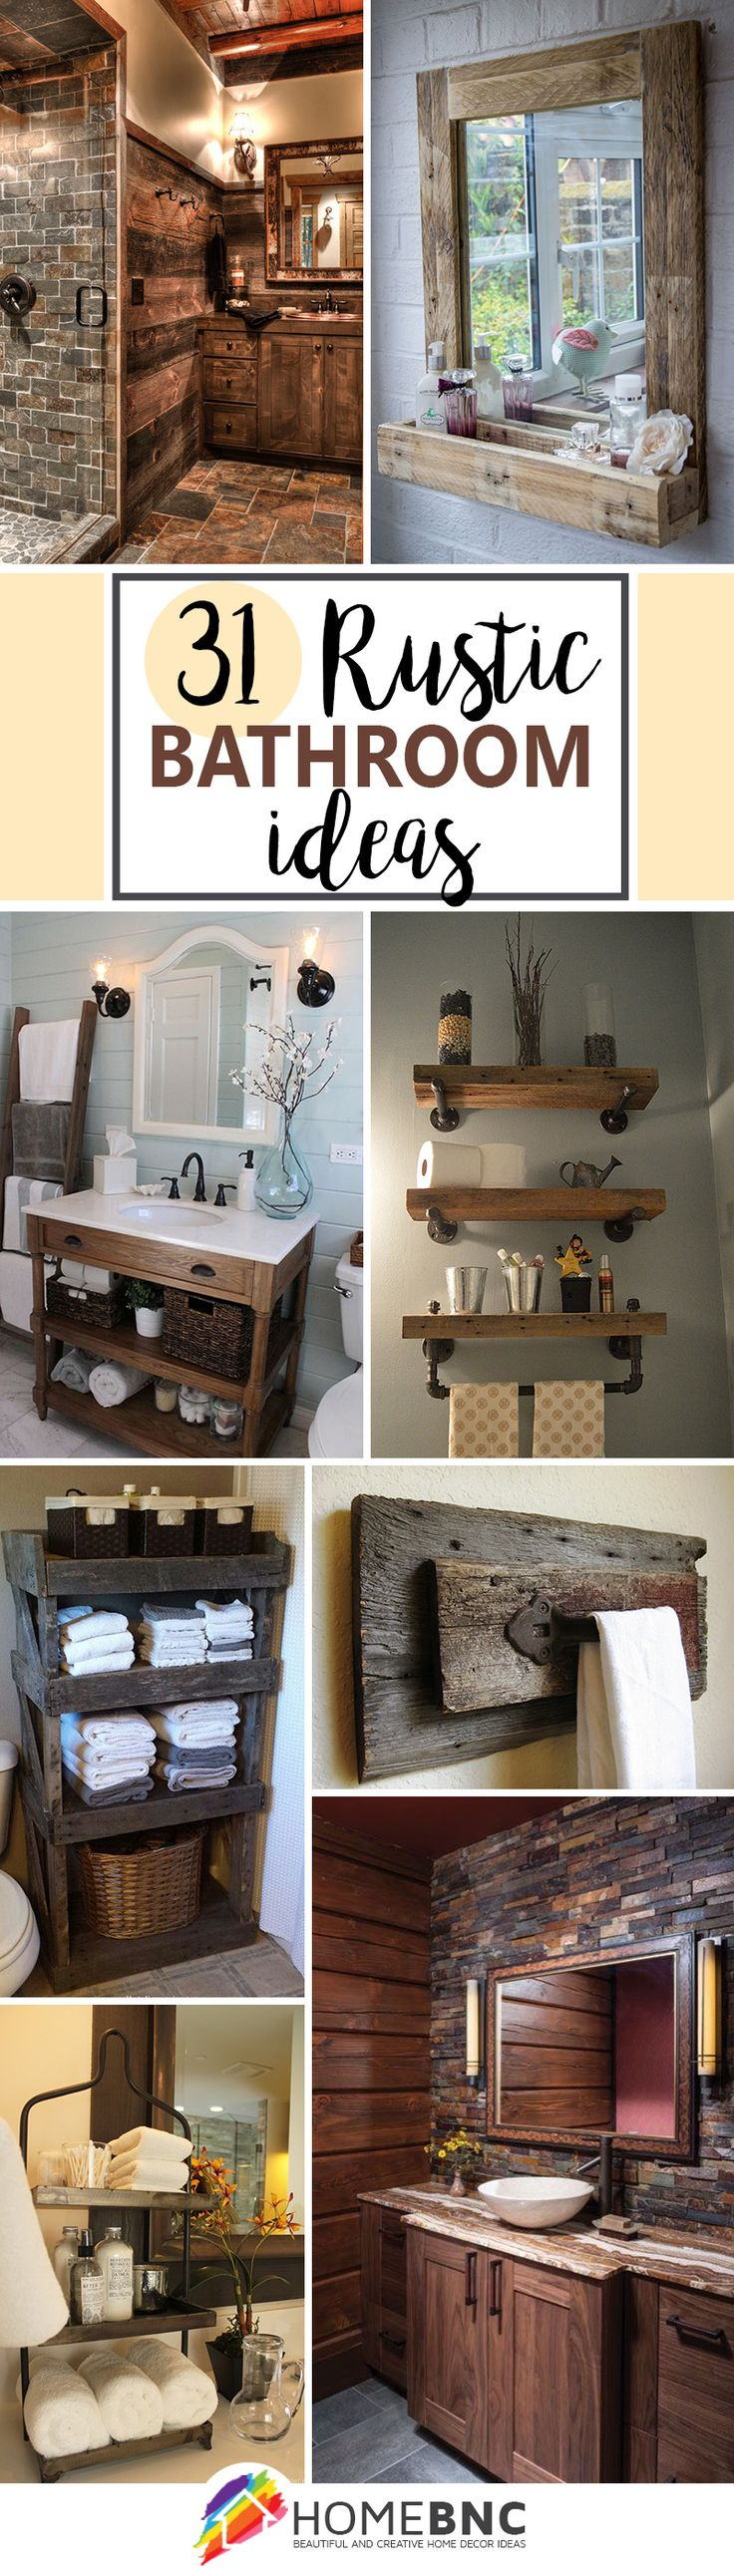 Best Rustic Bathroom Designs Ideas On Pinterest Rustic - Bathroom accessories for small bathroom ideas